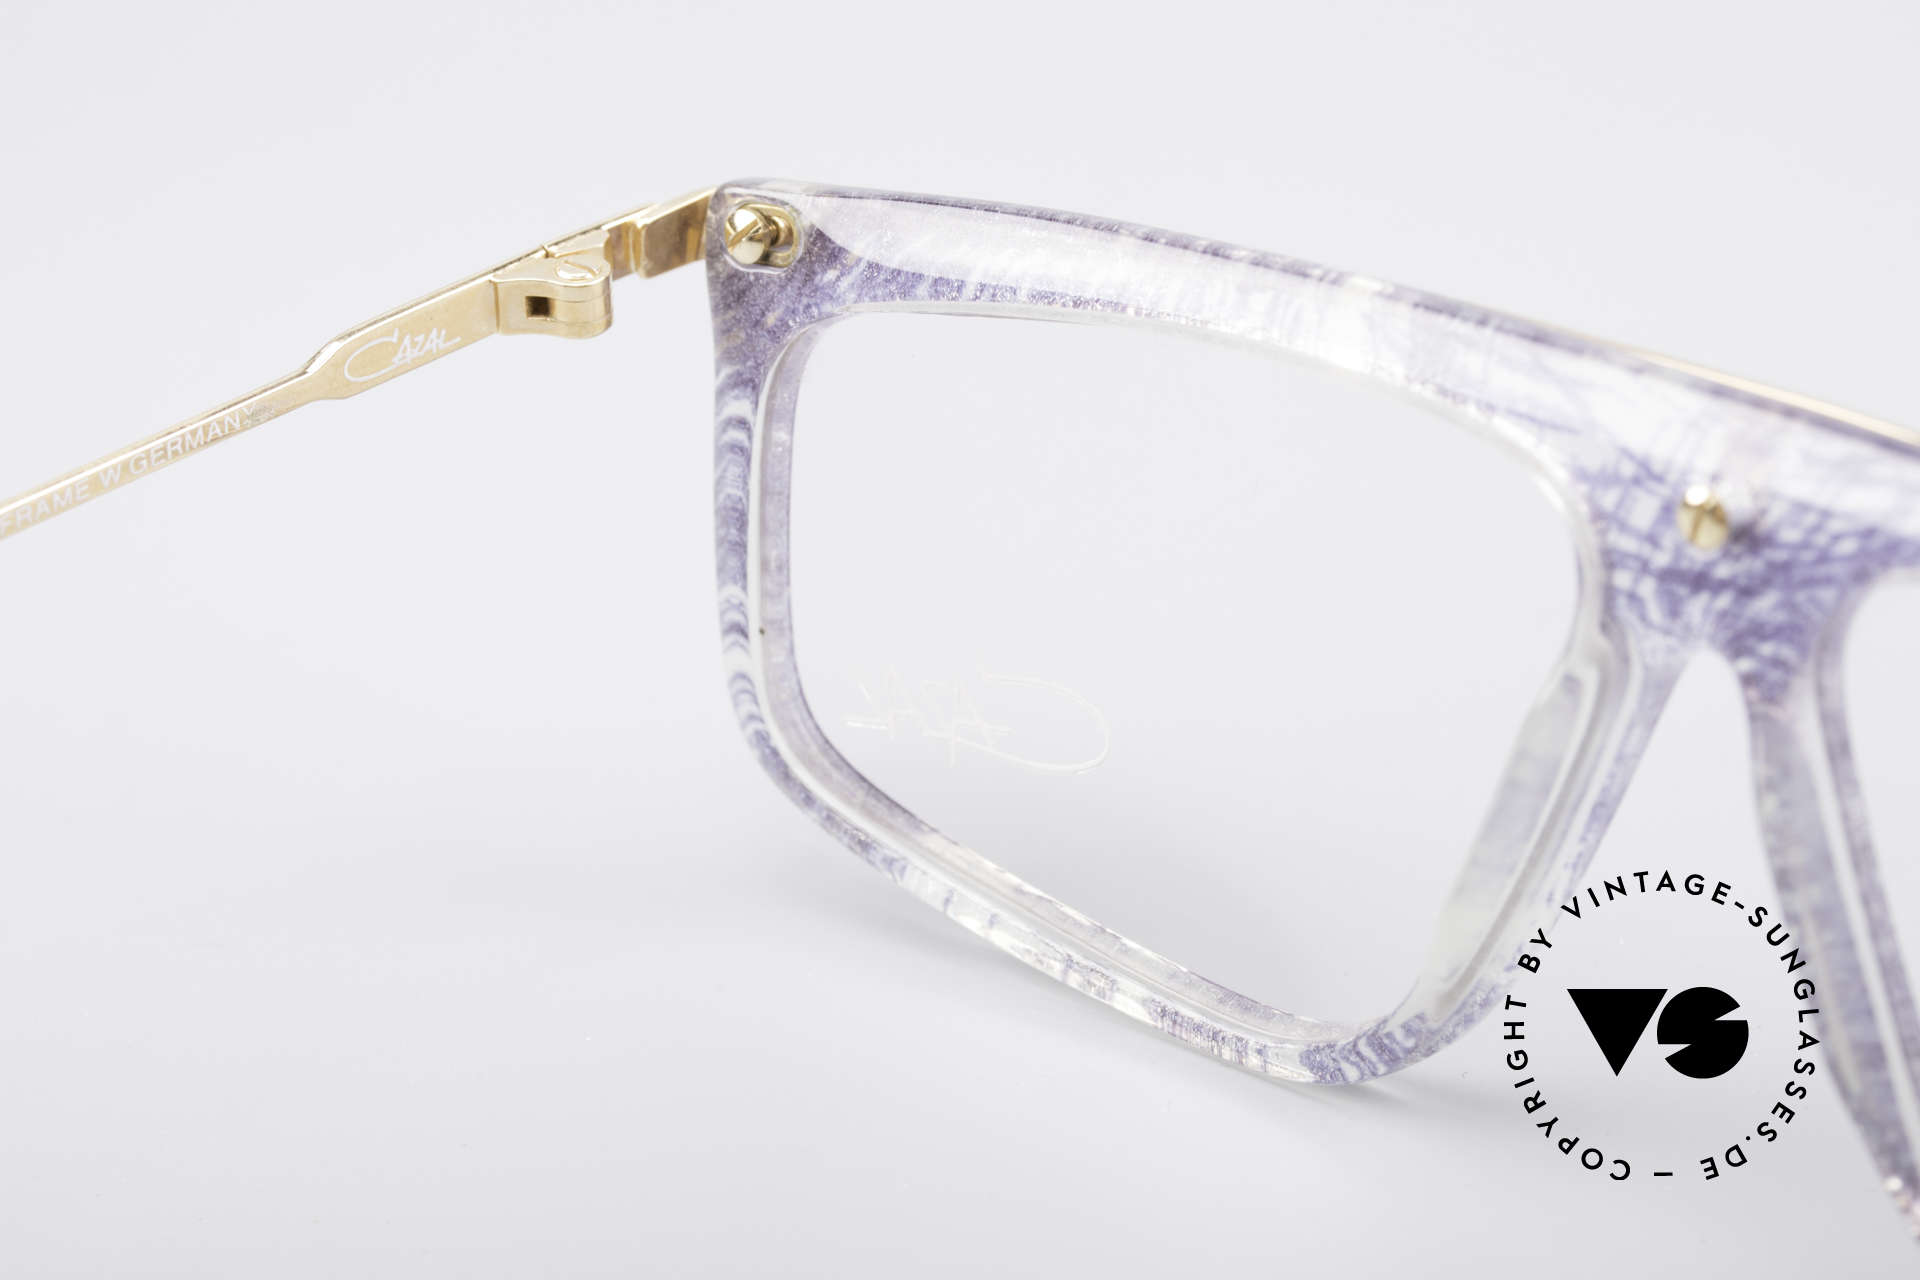 Cazal 190 Old School Hip Hop Frame, frame (M size 57/12) is made for optical (sun) lenses, Made for Men